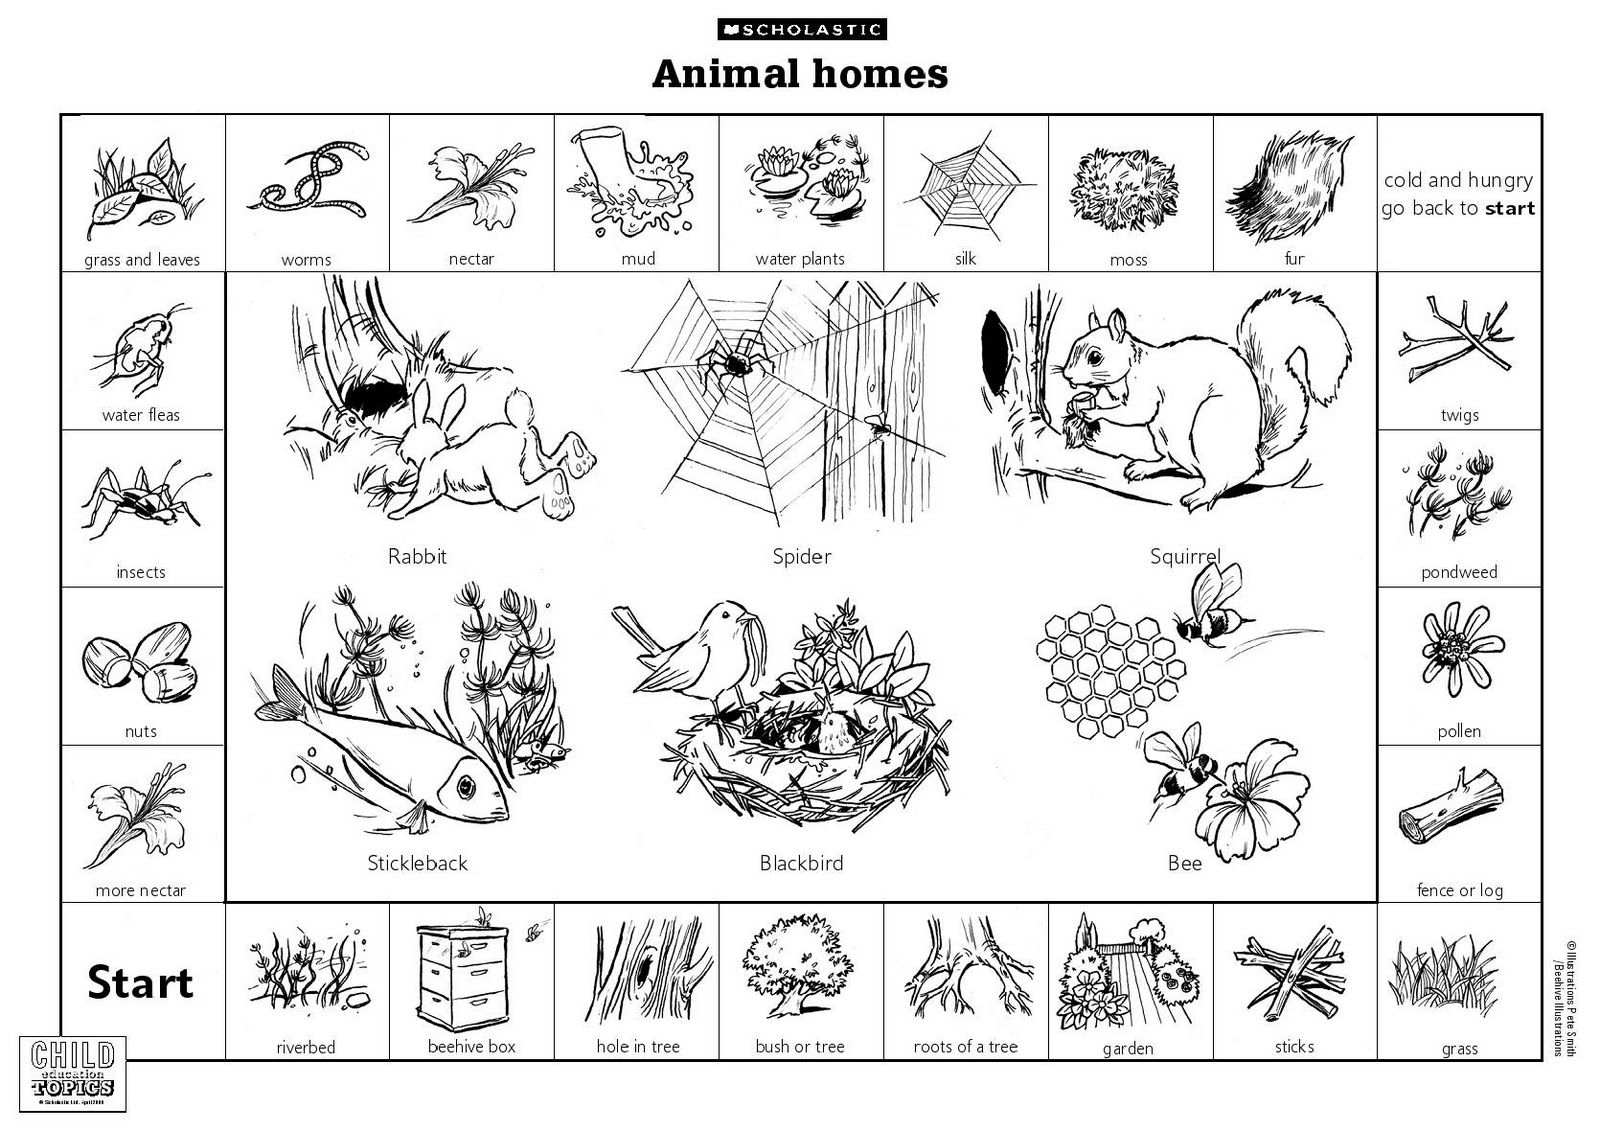 worksheet Animal Homes Worksheets 10 best images about animals on pinterest pretend play vocabulary worksheets and kids pages